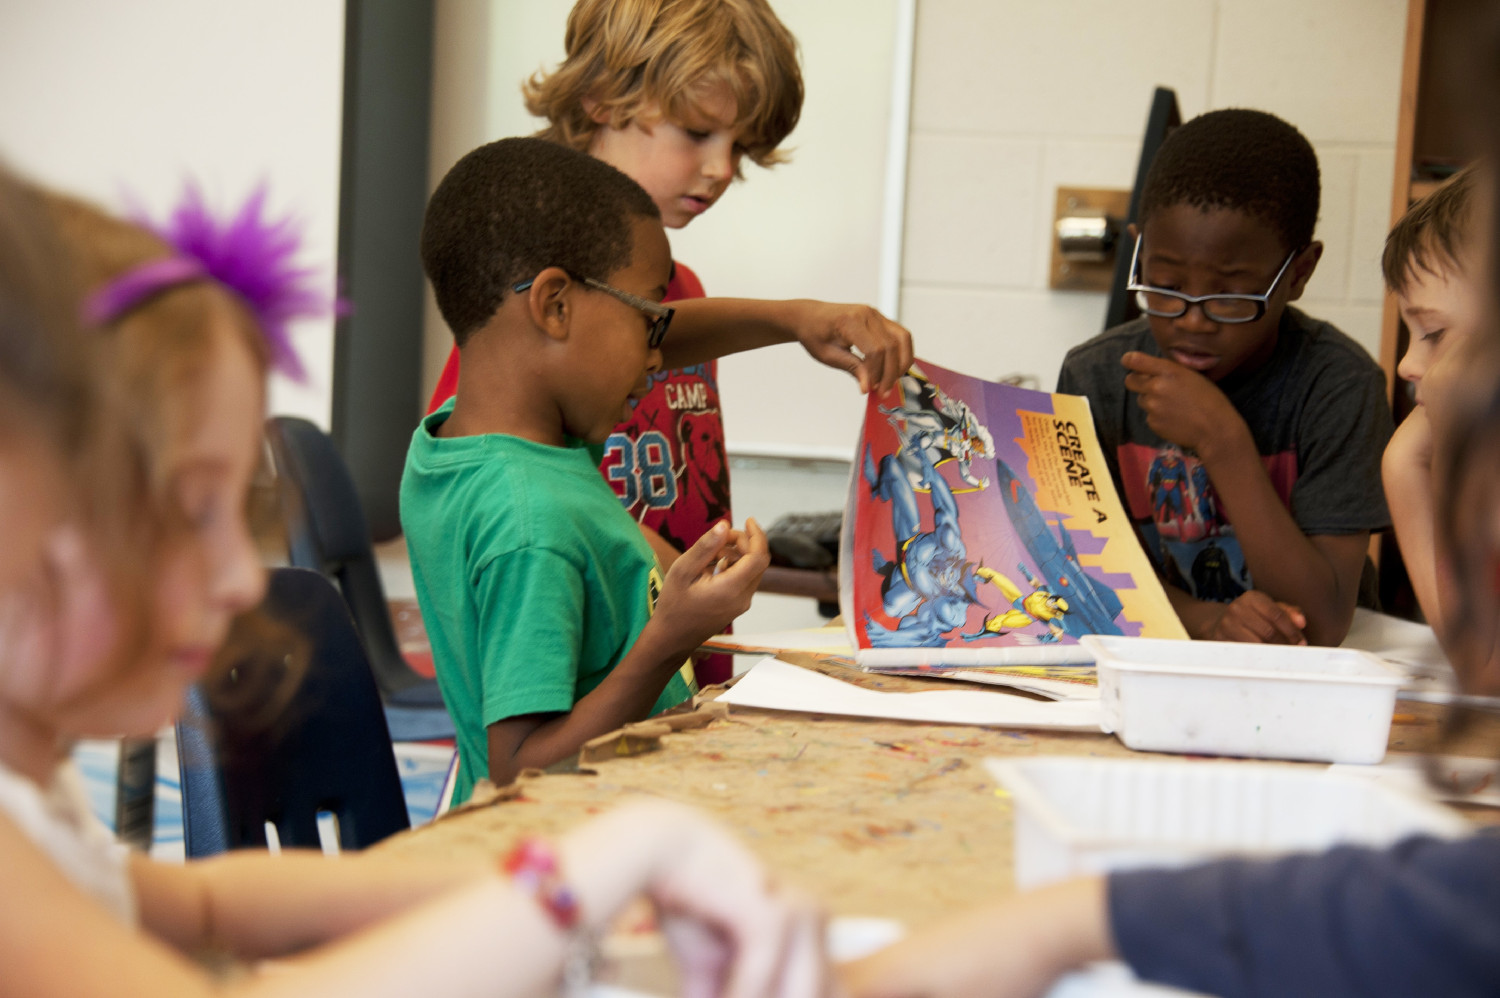 children working on a project together